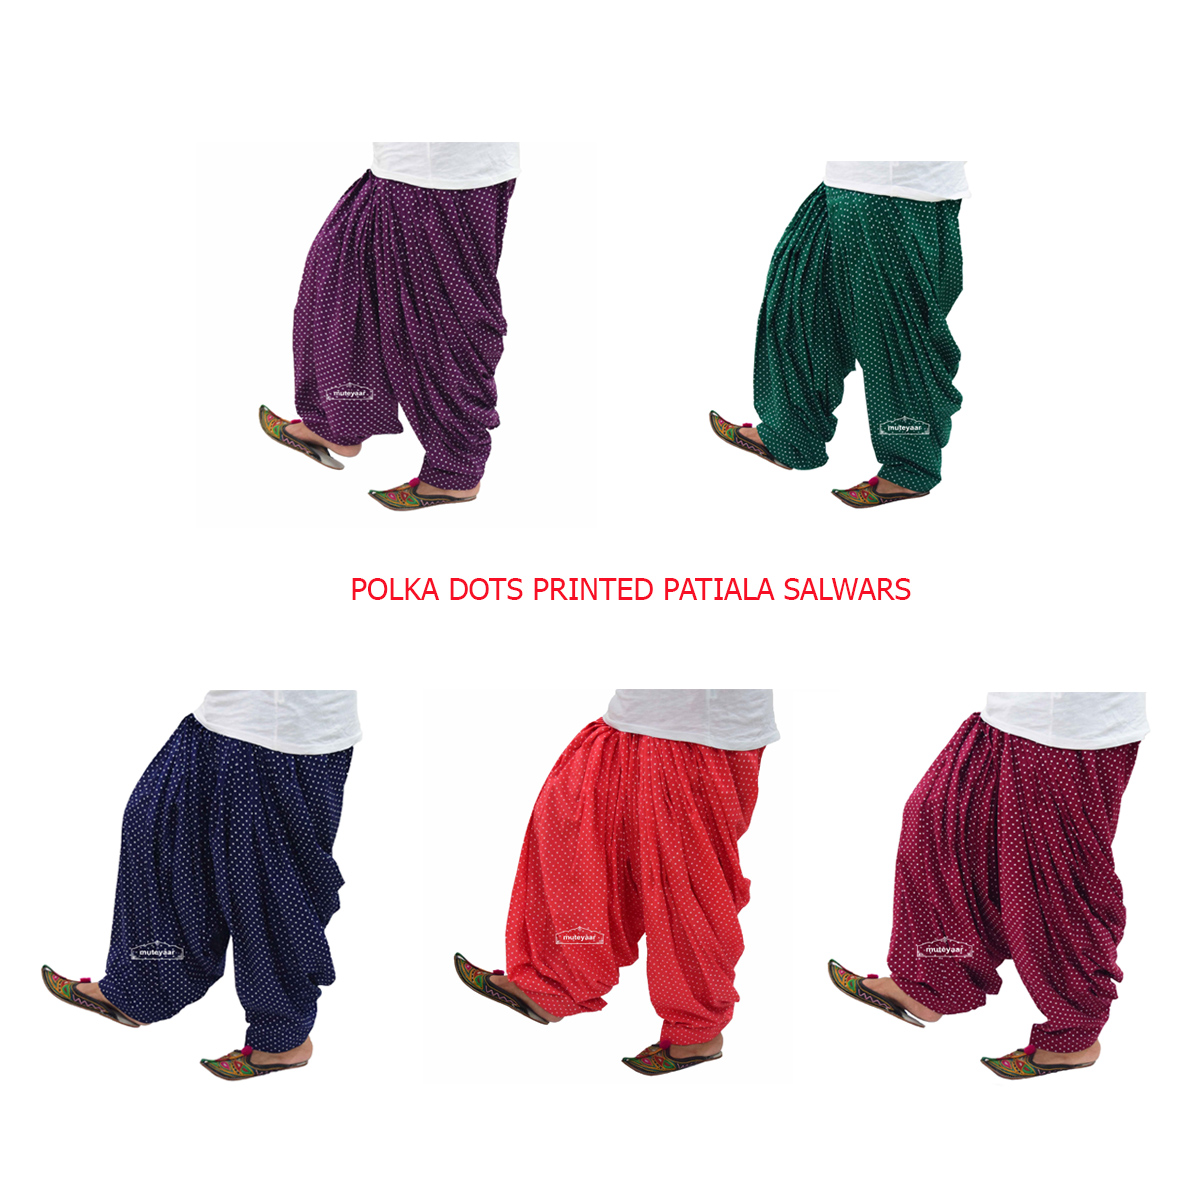 Polka Dots Print Patiala Salwar made with Pure Cotton - Many Colours Available 1